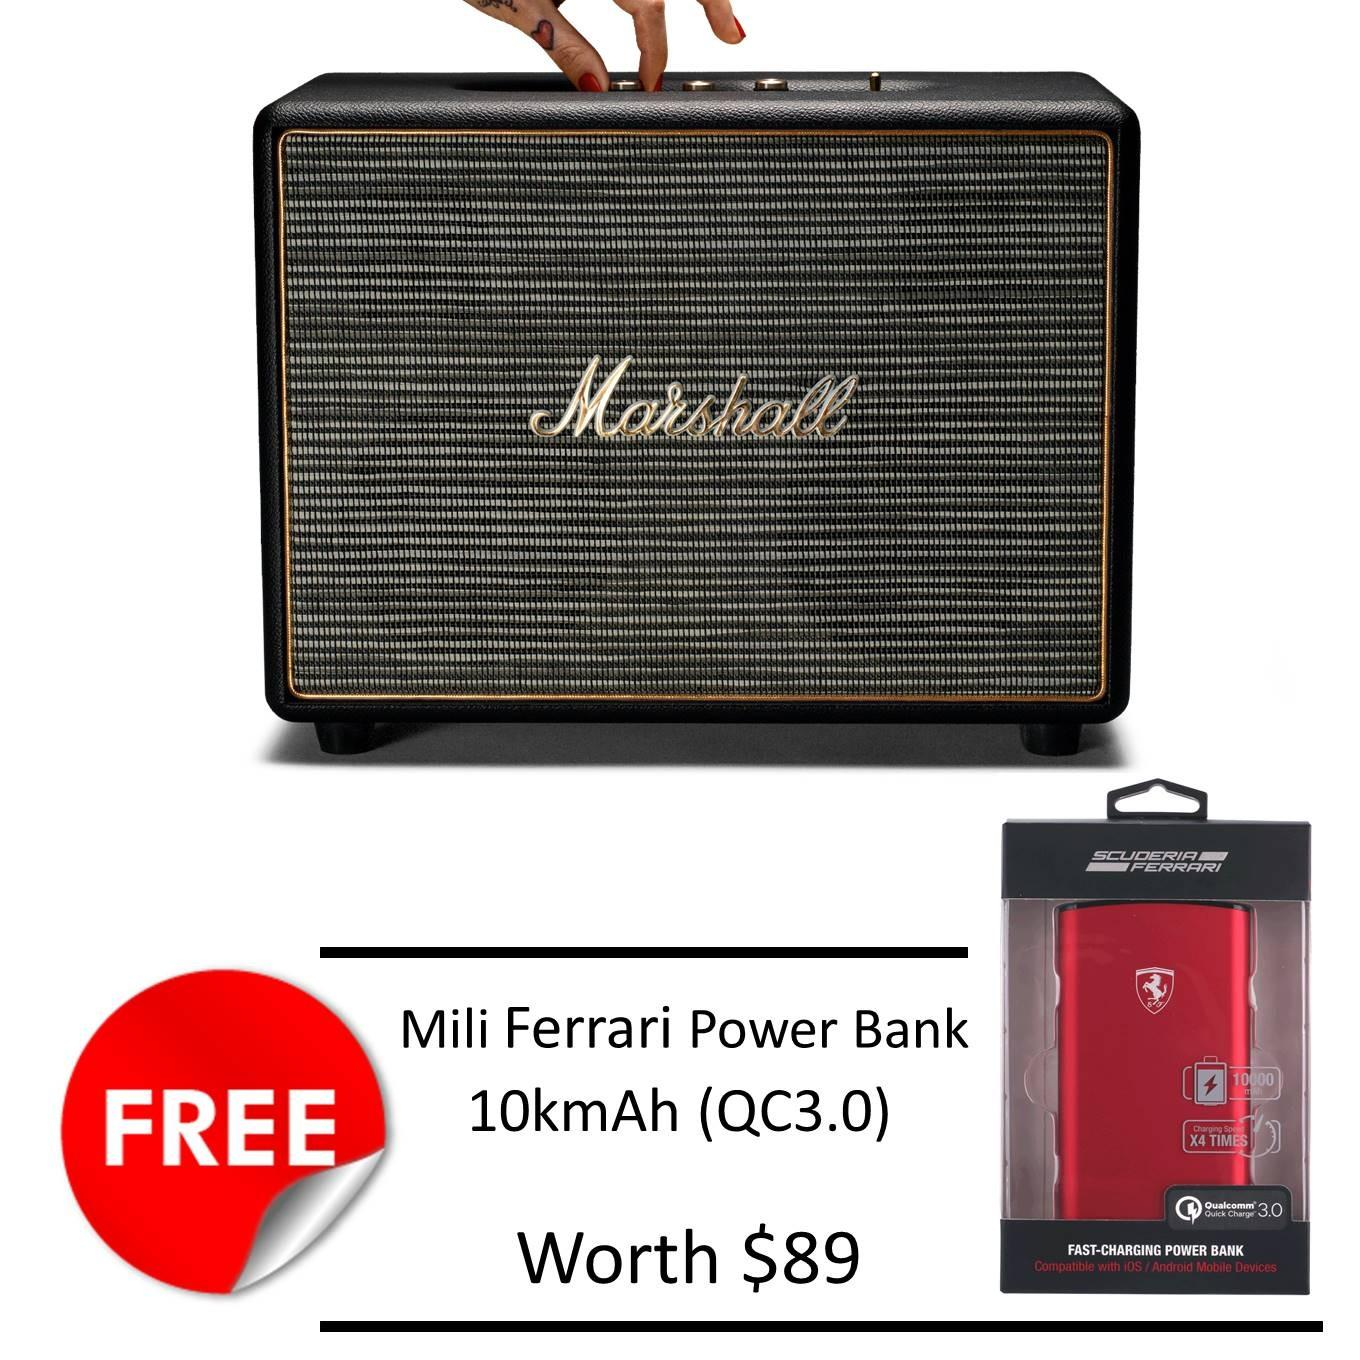 Buy Cheap Marshall Woburn Speaker Black Free Mili Ferrari 10Kmah Powerbank